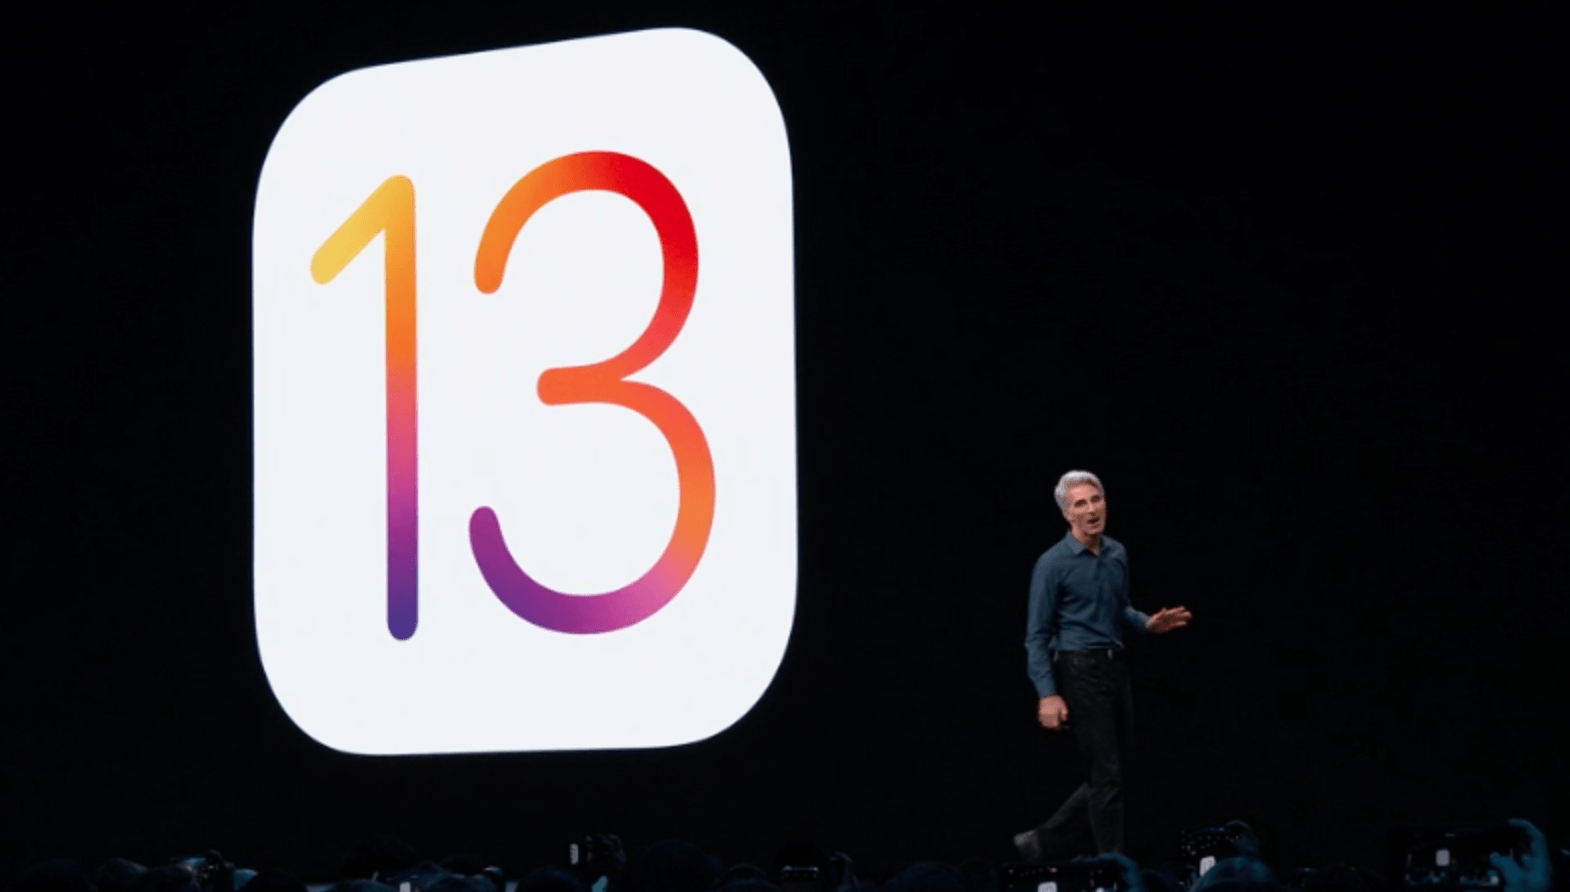 IOS 13 Everything you need to know.